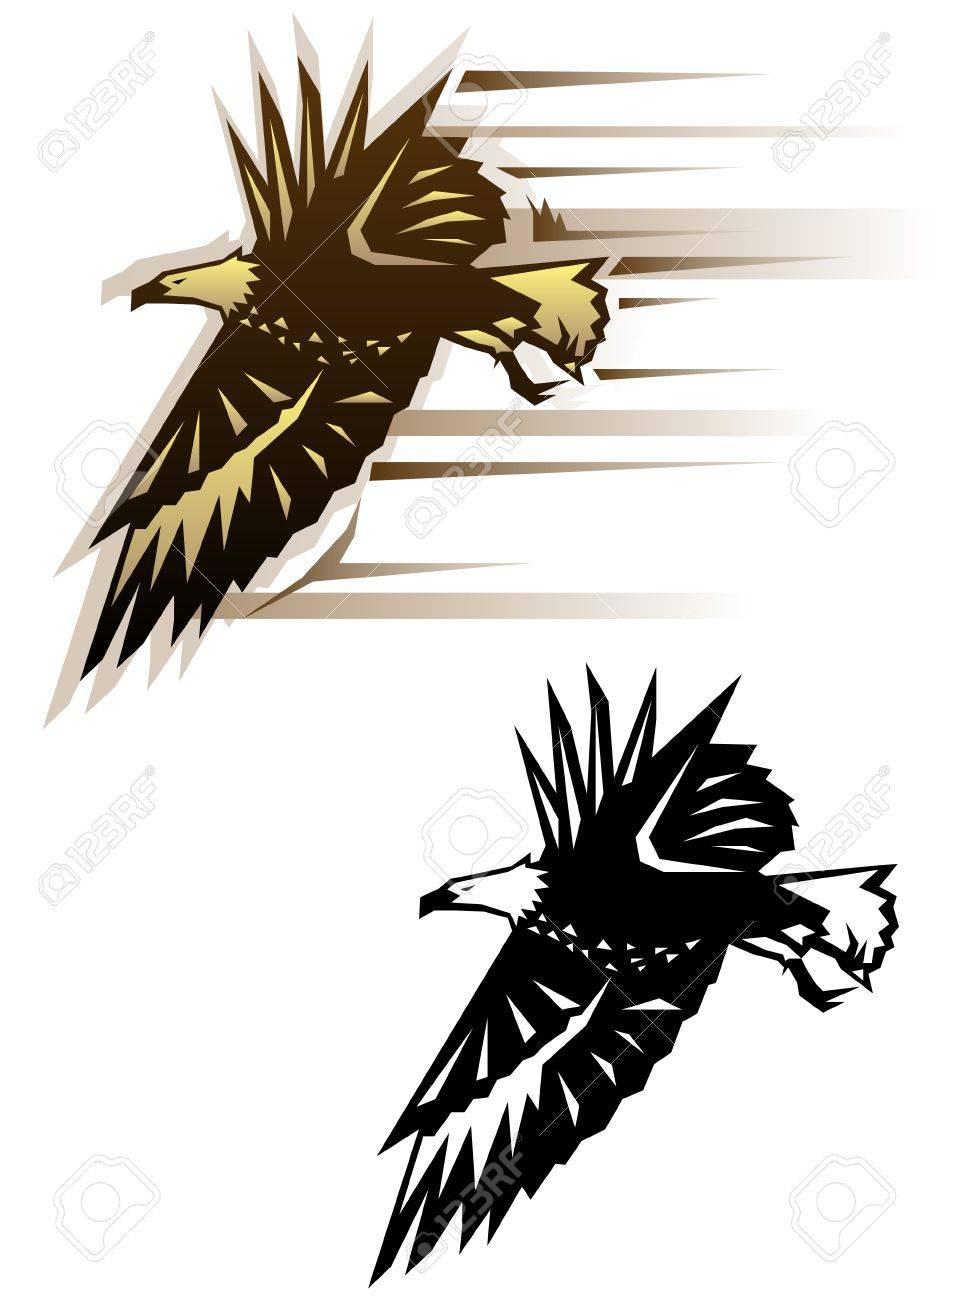 graphic eagle illustration in two color schemes royalty free